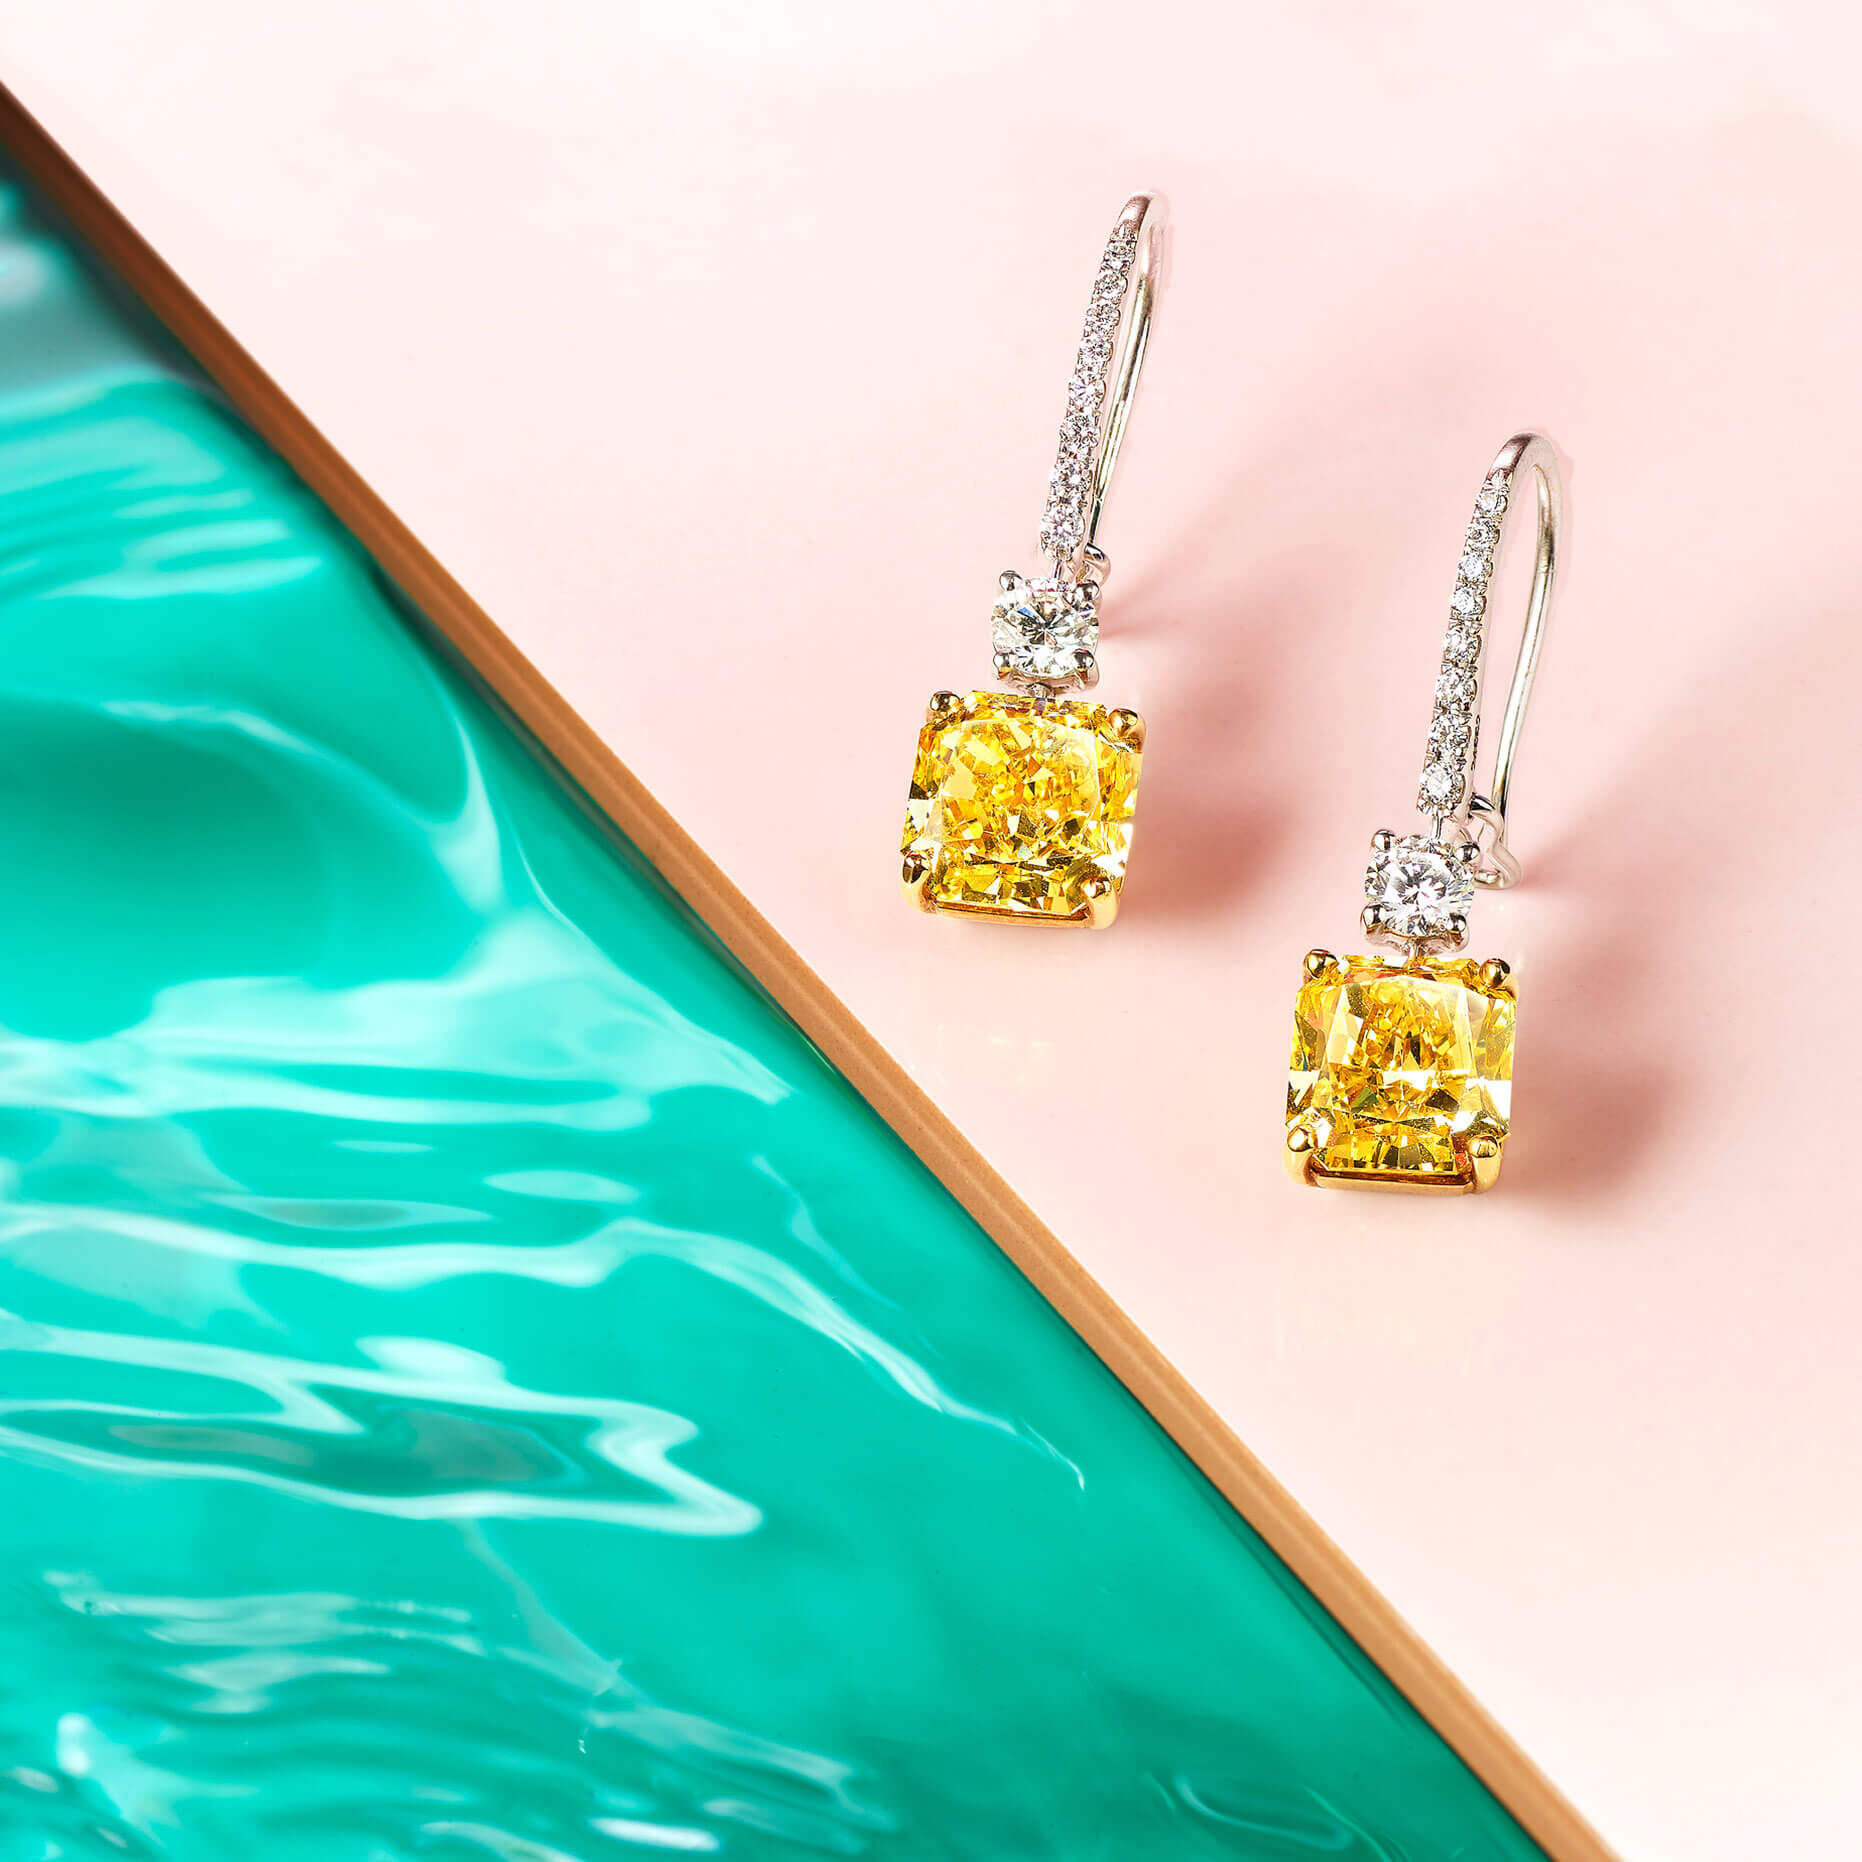 Graff Classic Graff collection Yellow and white diamond earrings at a pool side